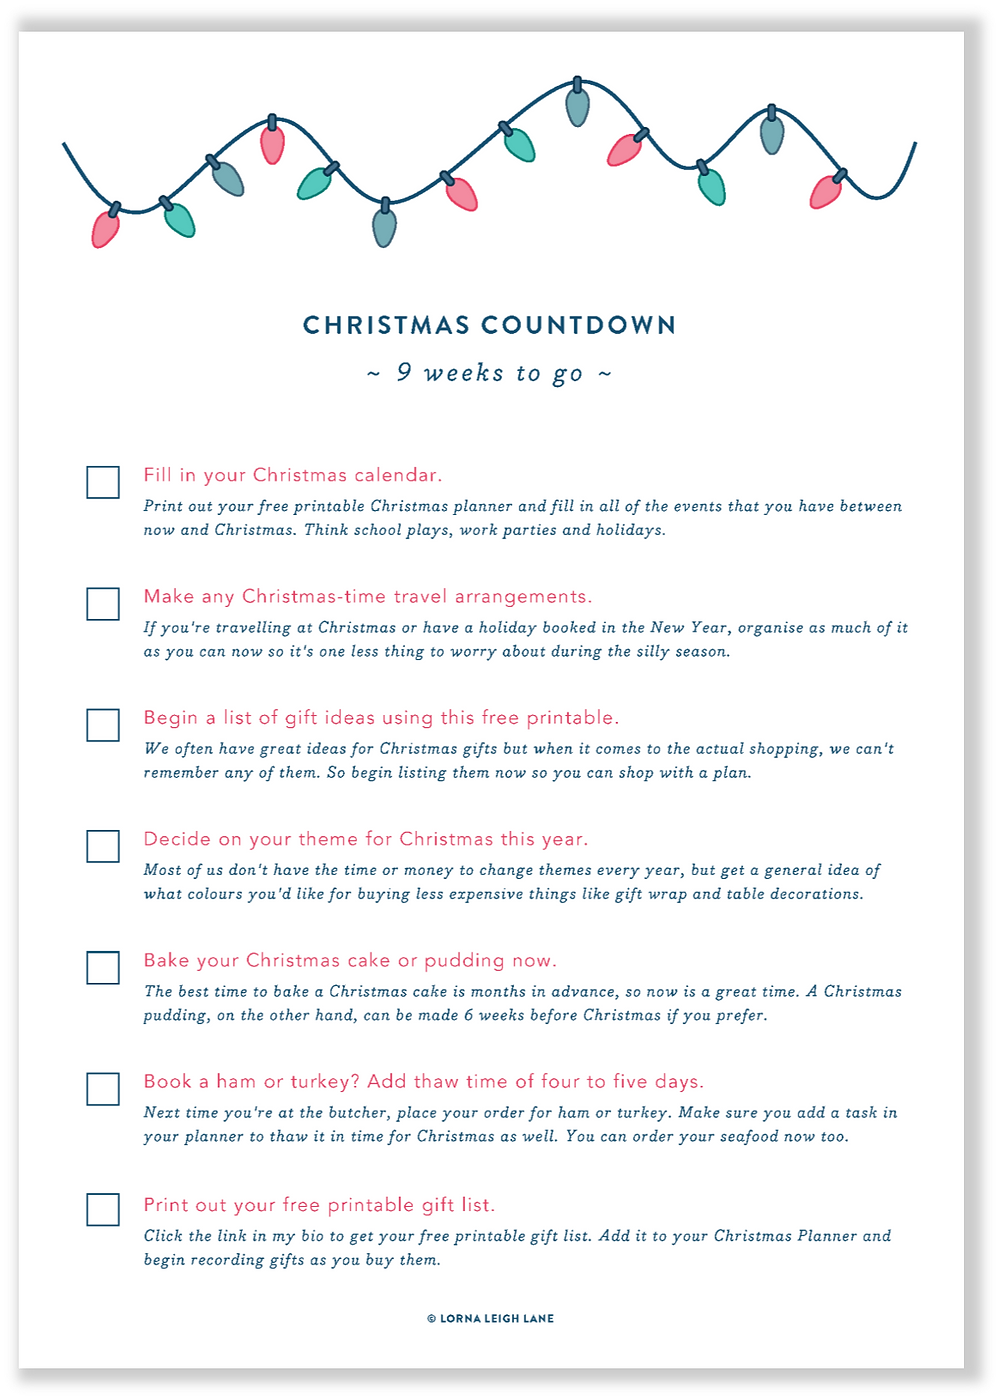 Christmas Countdown checklist - 9 weeks to go